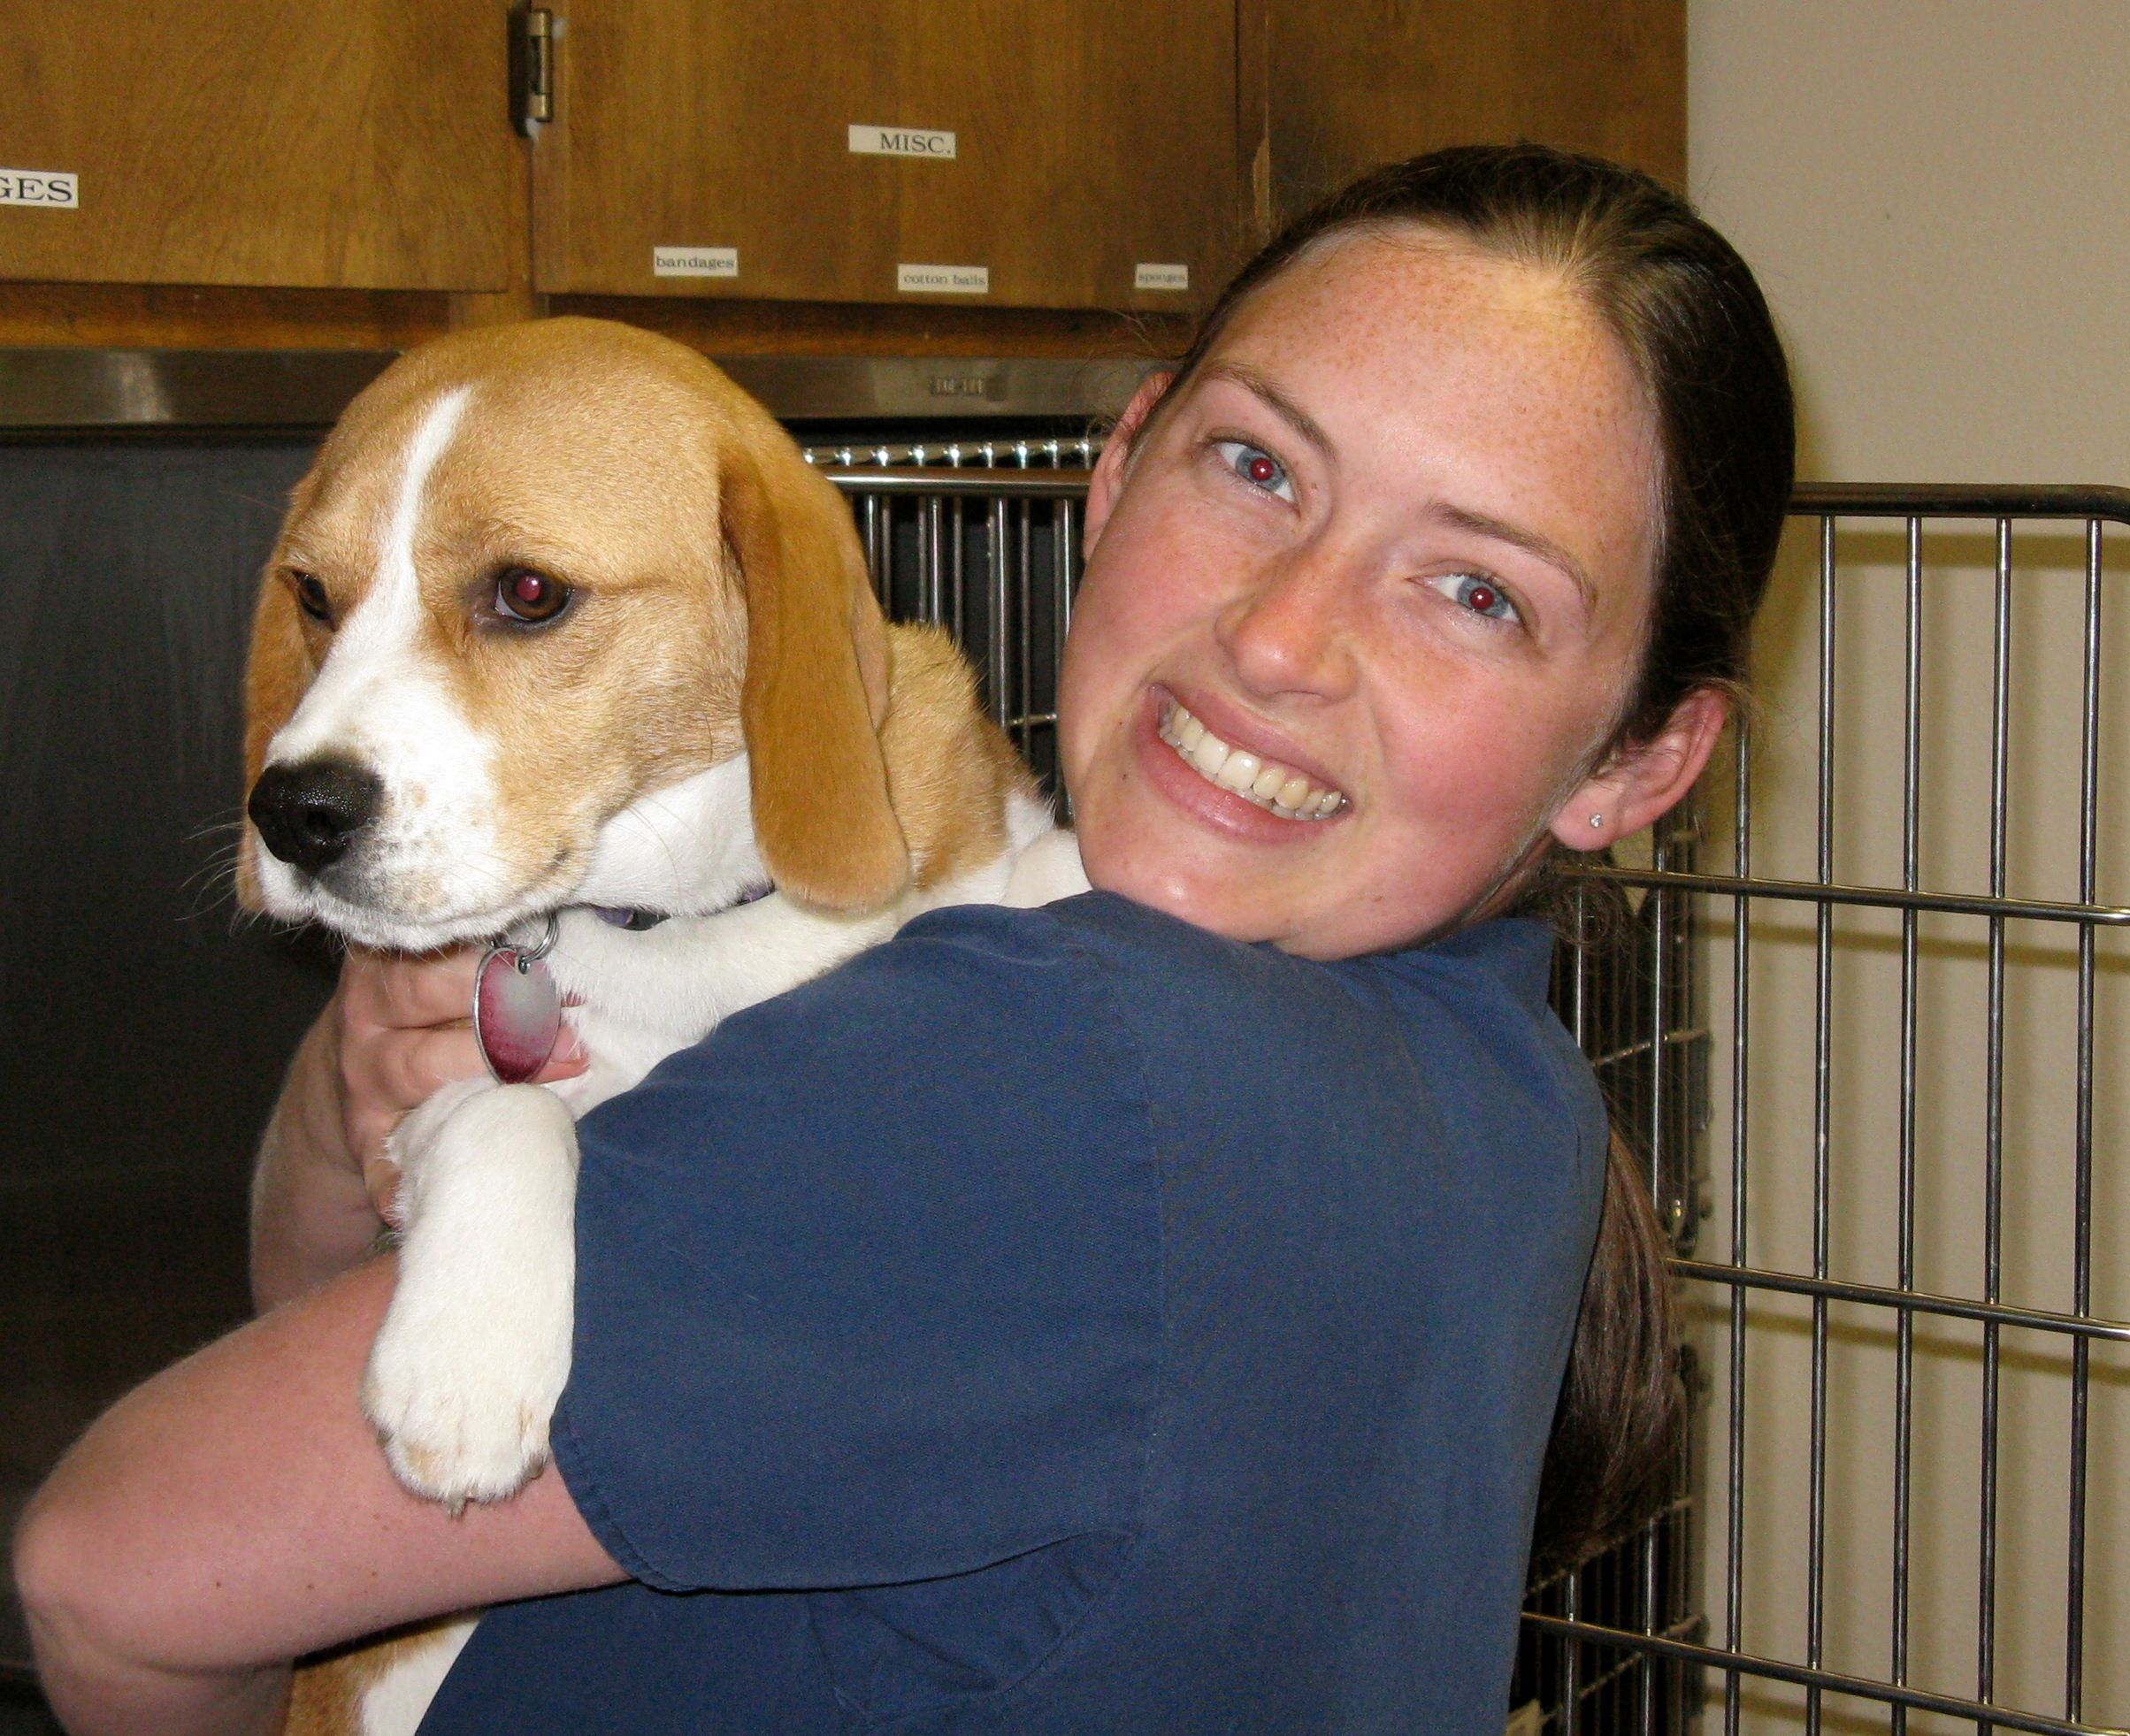 10++ Pets friend animal clinic images